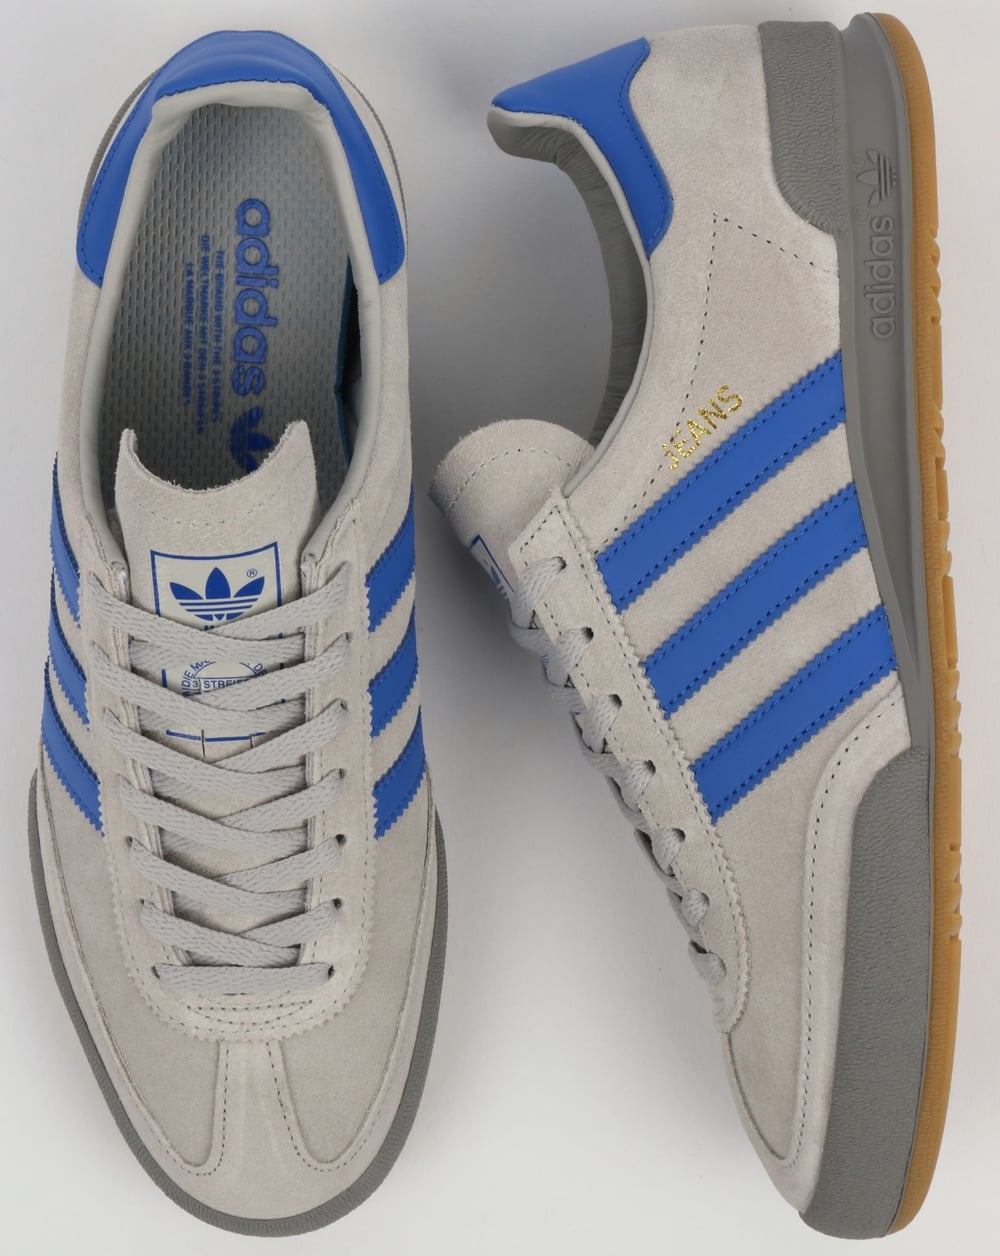 Jeans Mk2 Greyhi Adidas Blue Trainers Res qMLzGSUVp